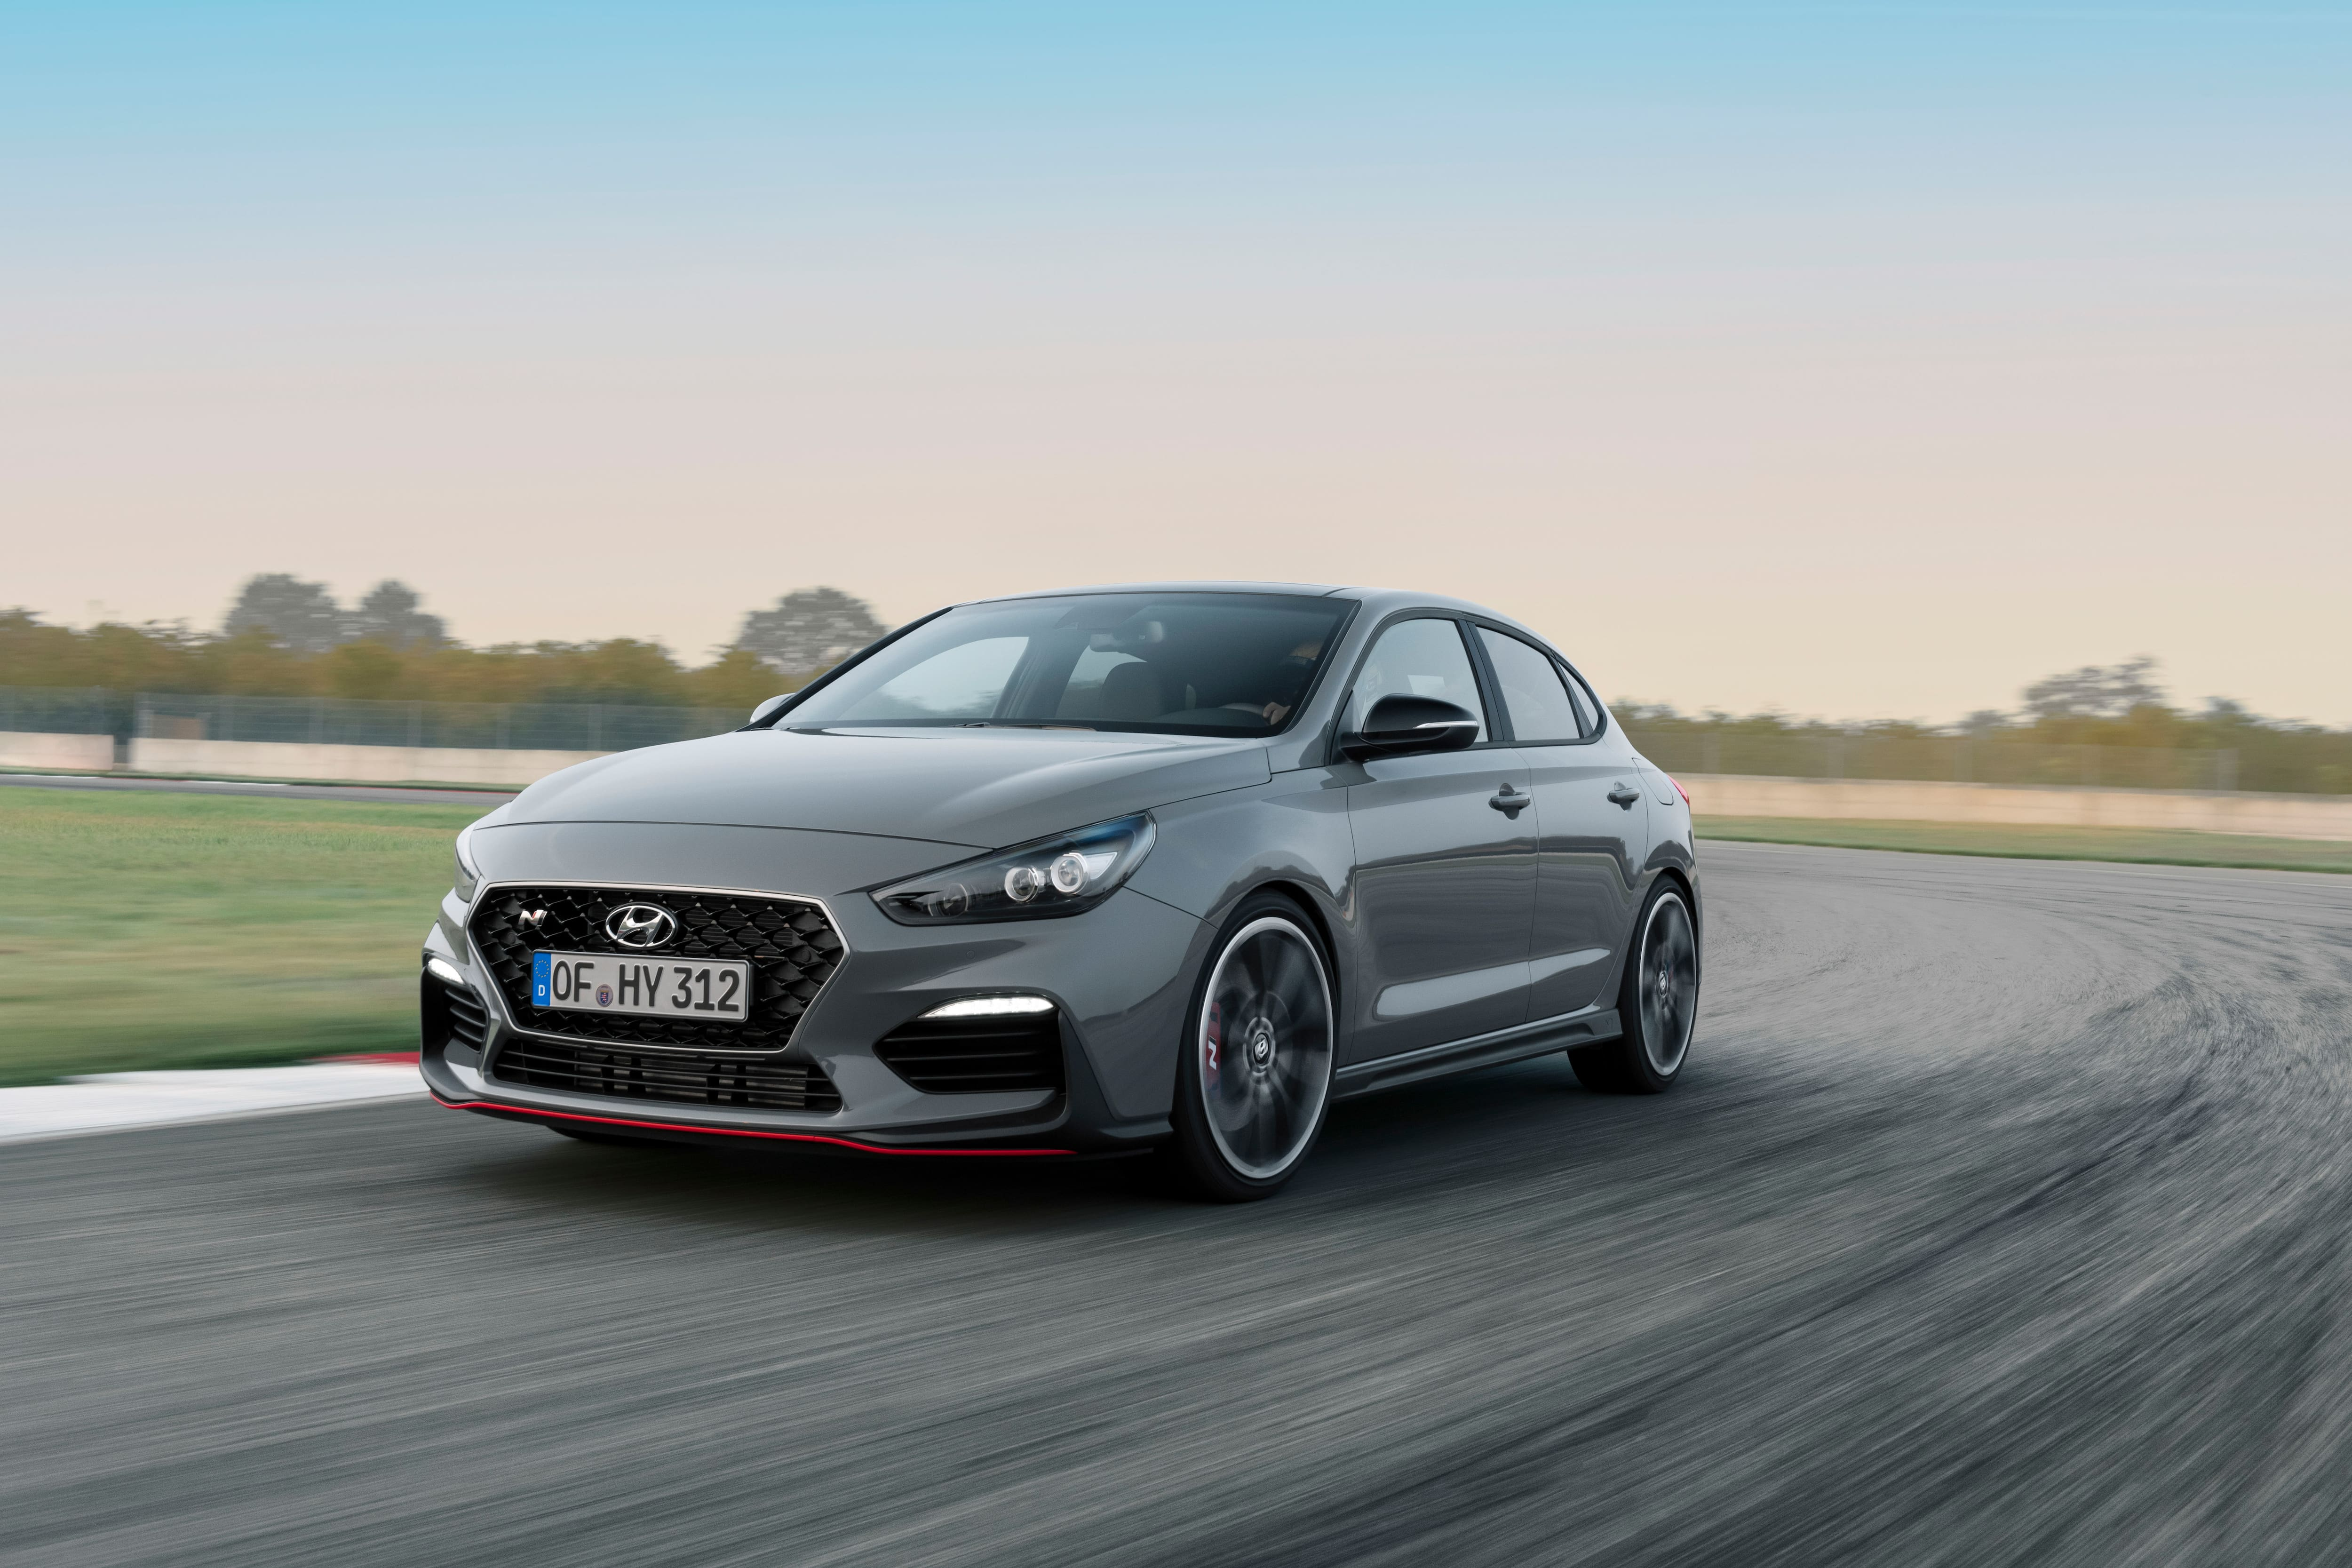 From Rome to Paris in 8:18 minutes: Hyundai unveils the All-New i30 Fastback N